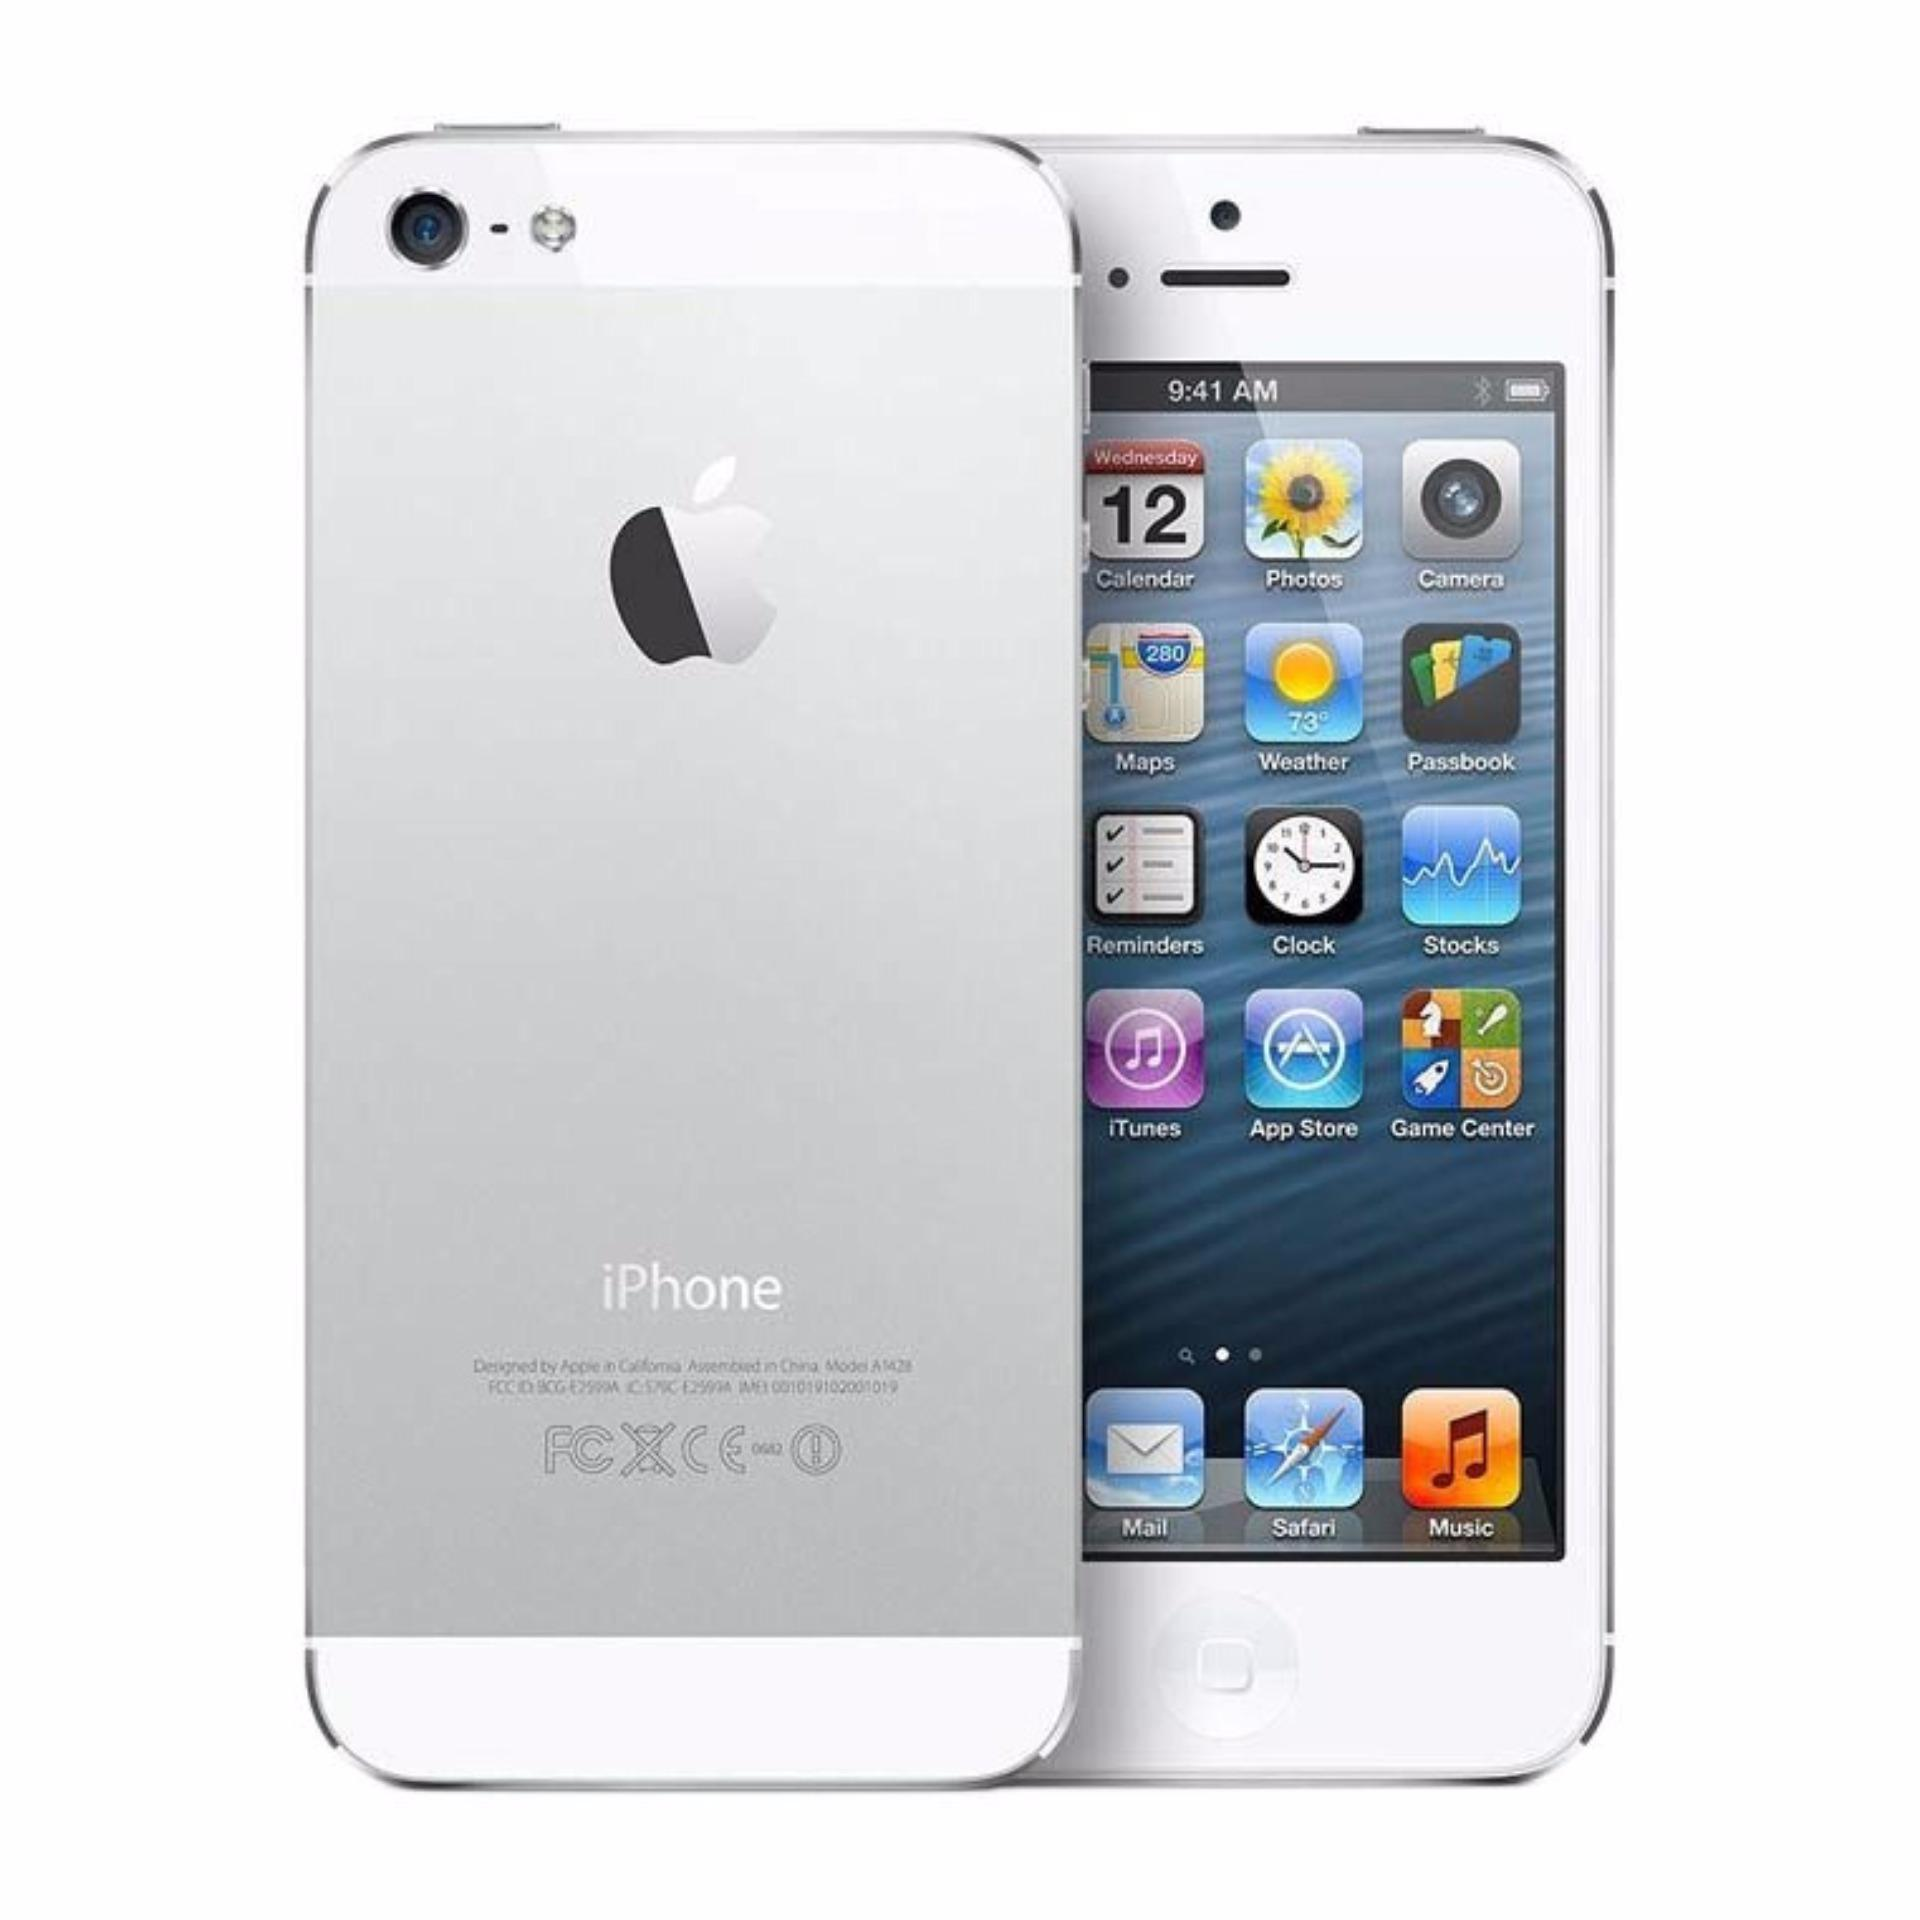 Apple iPhone 5 32GB - White [Refurbish] - Grade A